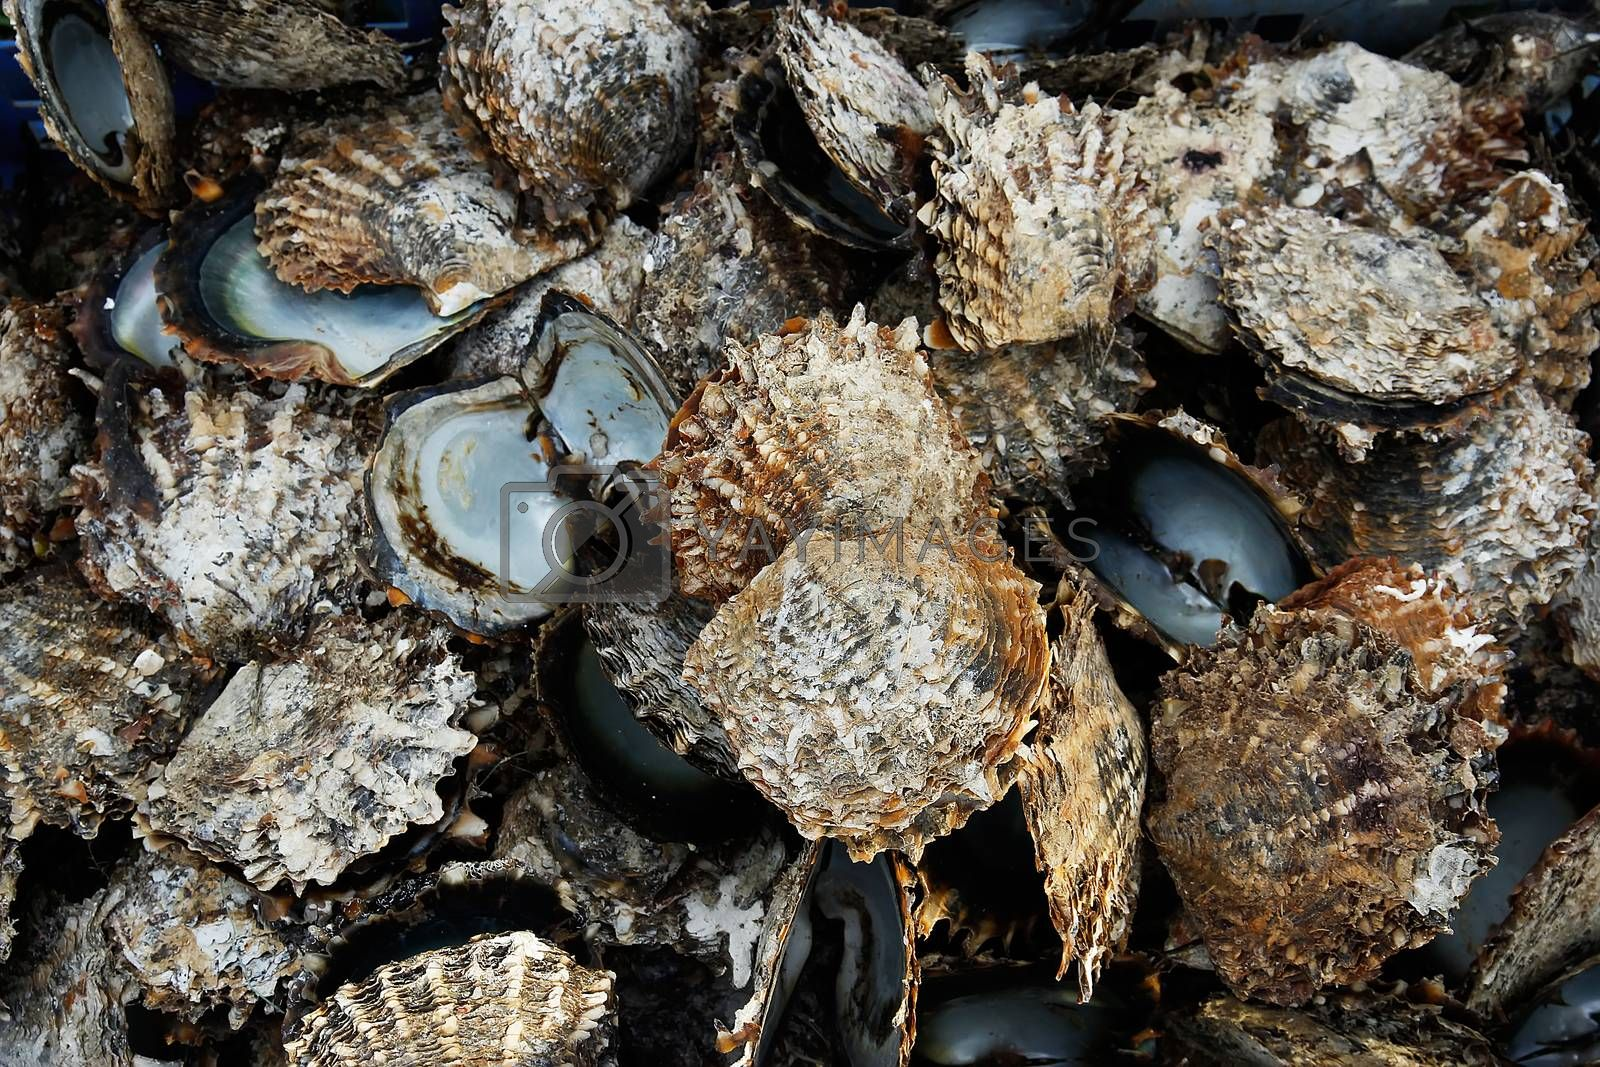 Royalty free image of Pile of oyster shells at pearl farm, Vanua Levu island, Fiji by donya_nedomam